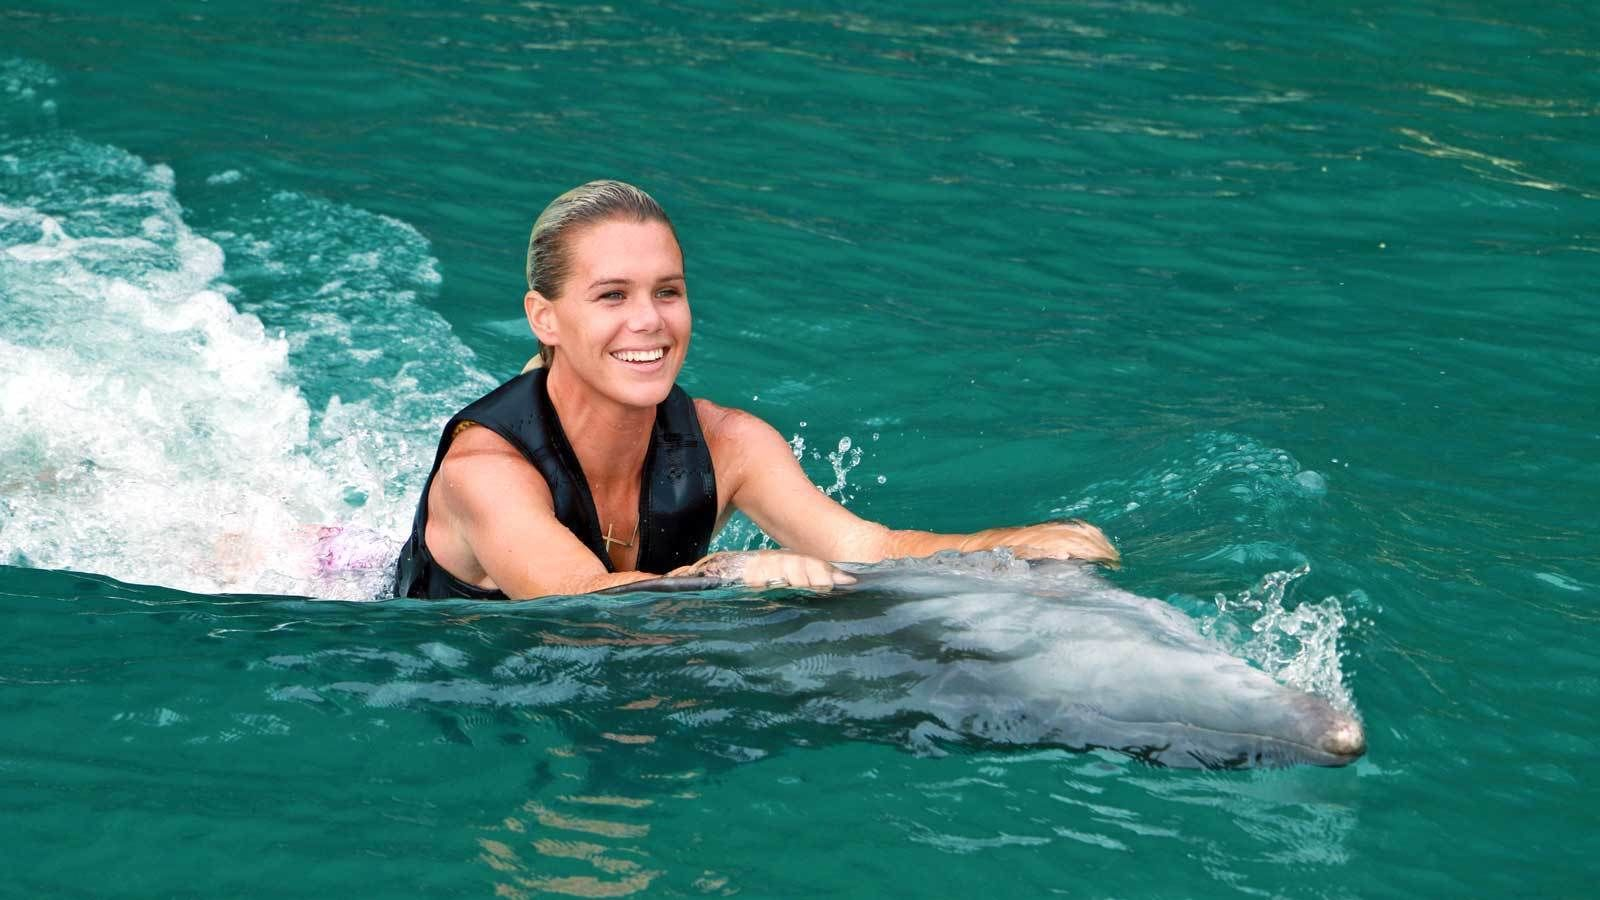 dolphin pulling woman while swimming upside down in the water at the Cayman Islands